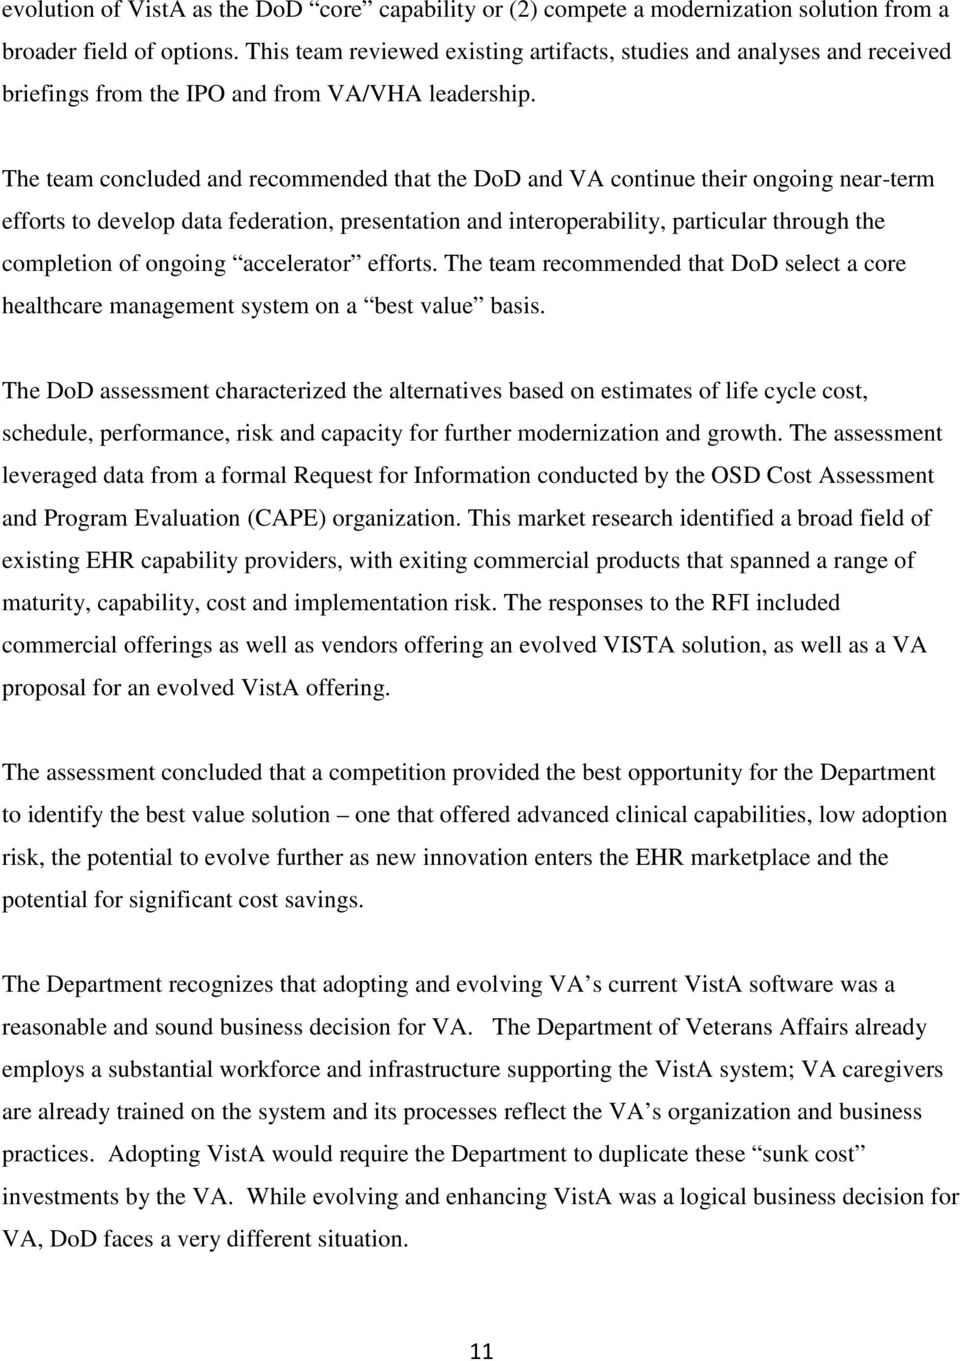 The team concluded and recommended that the DoD and VA continue their ongoing near-term efforts to develop data federation, presentation and interoperability, particular through the completion of